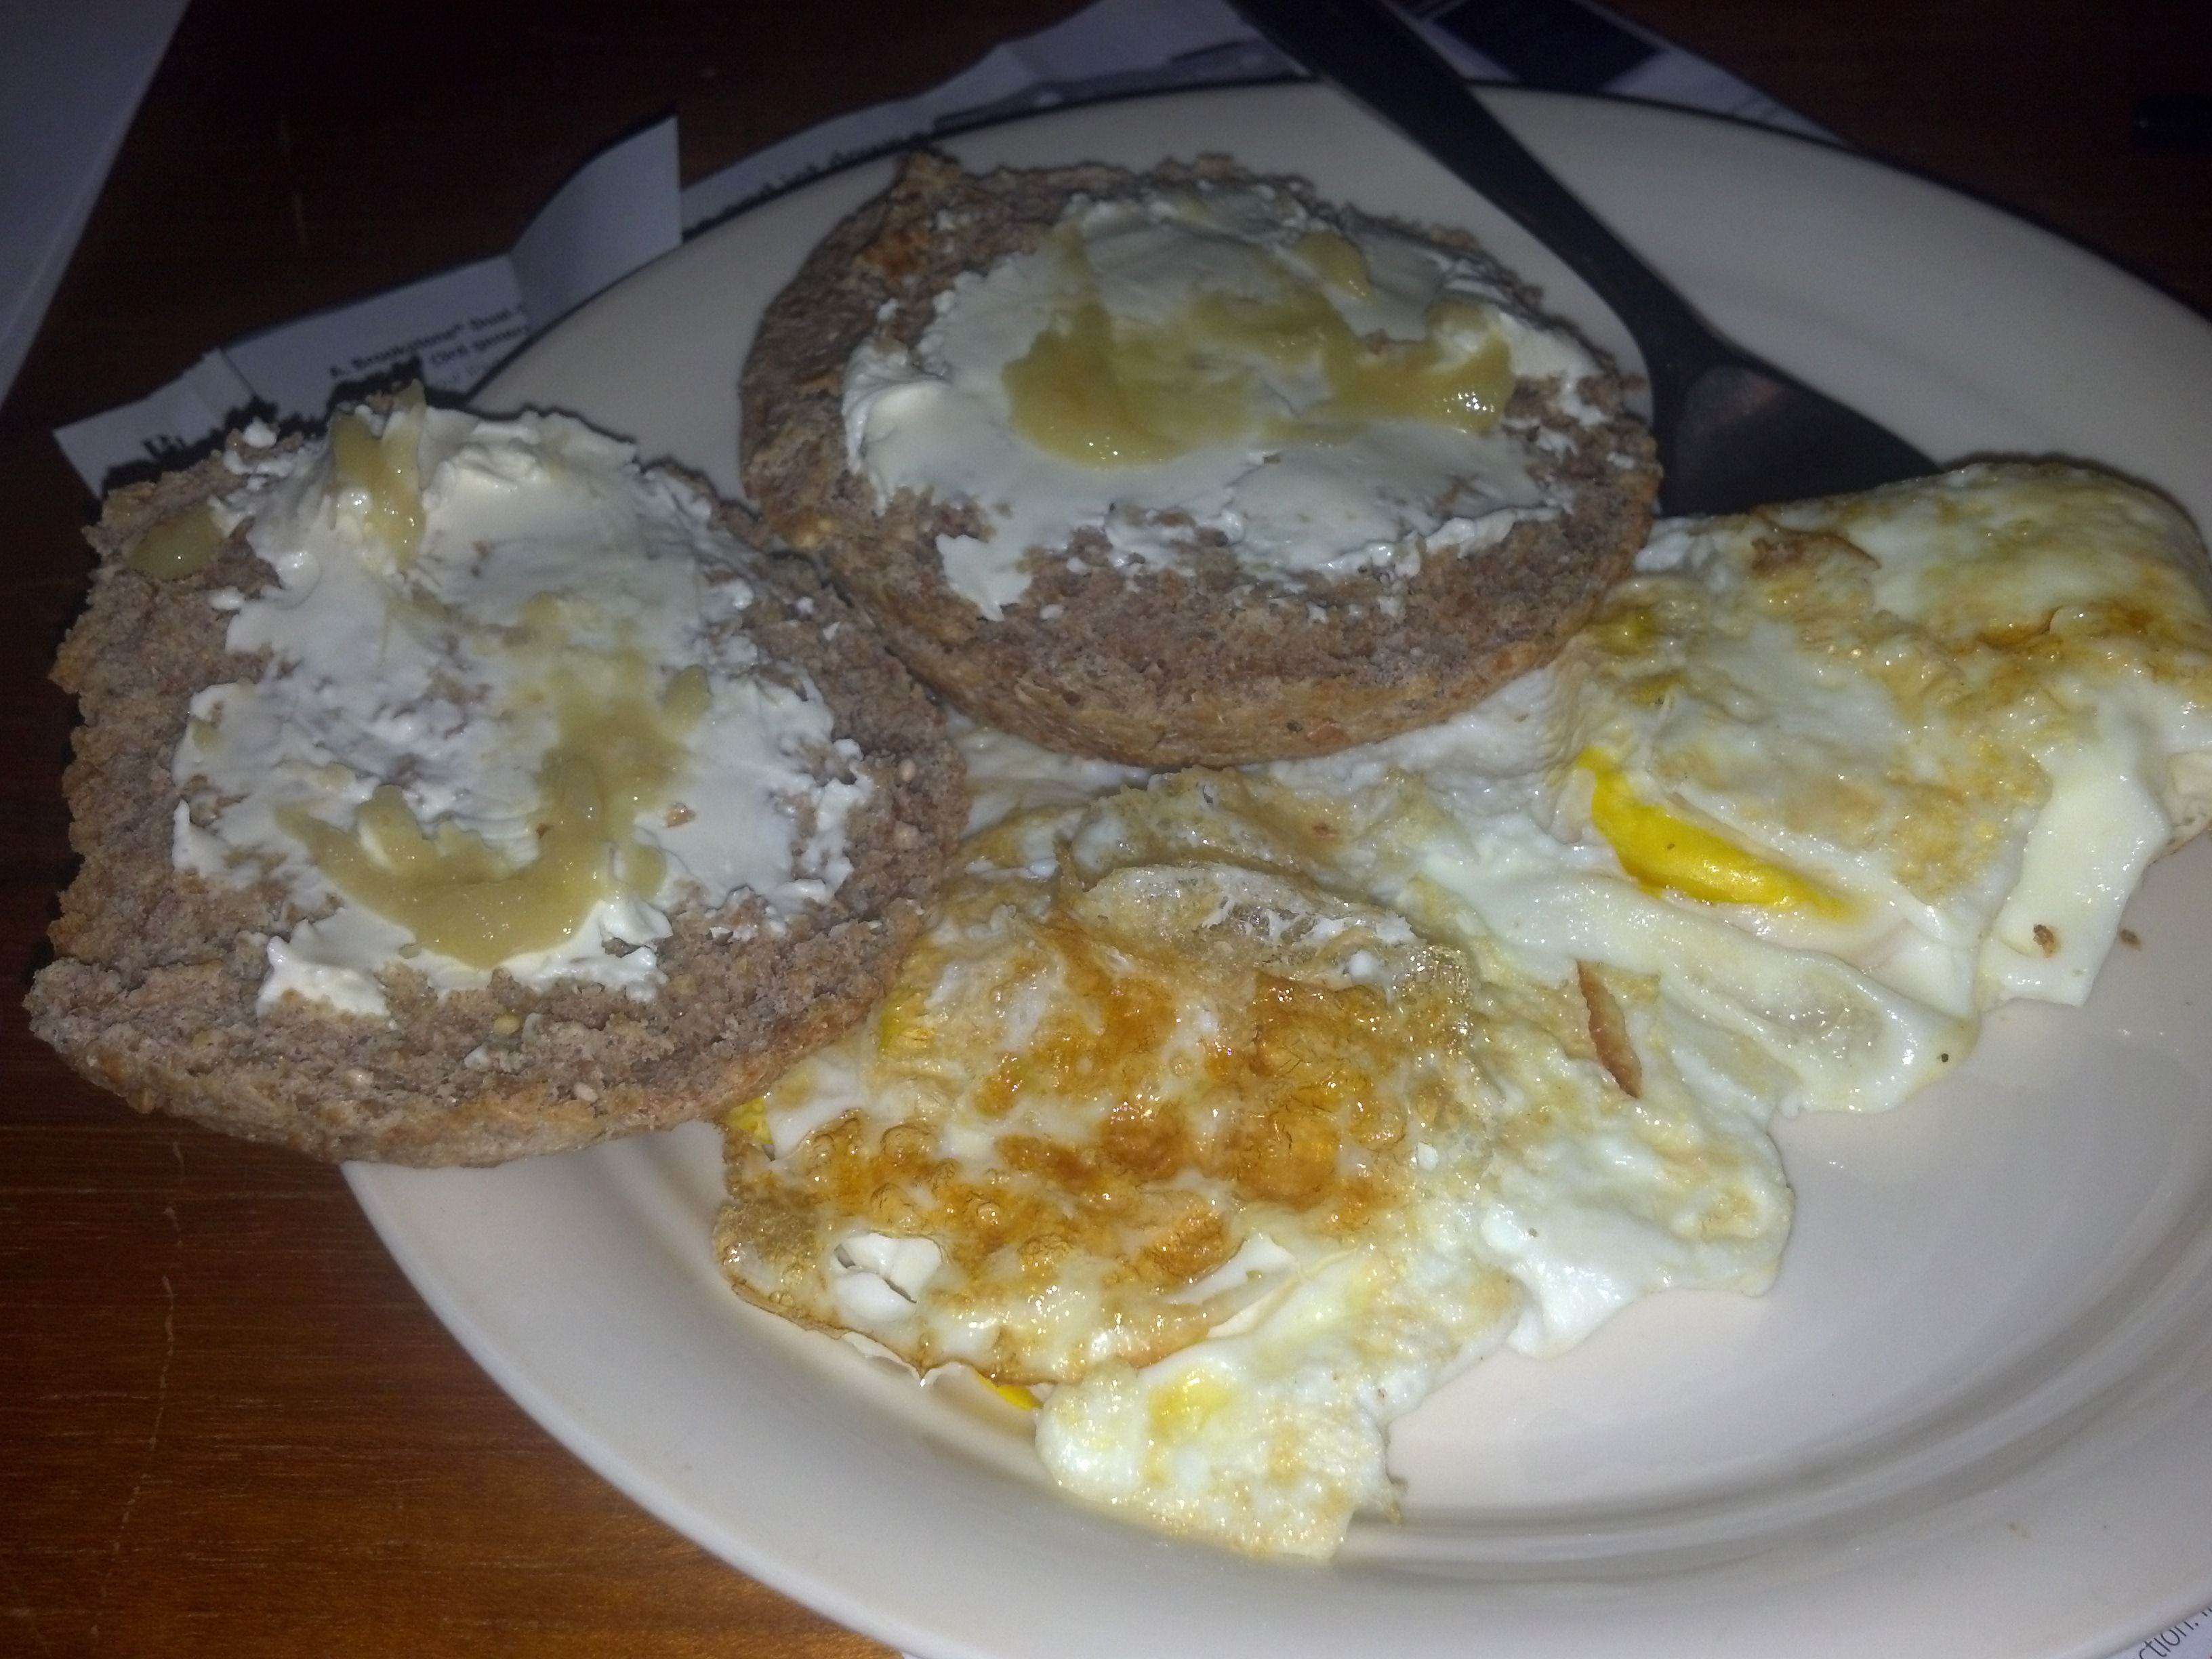 Breakfast 11/13/12 -Two eggs (140) with 1 tbsp butter (100),oneEzekiel English Muffin(160), 2 tbsp cream cheese (80), ginger spice.Total calories 480.